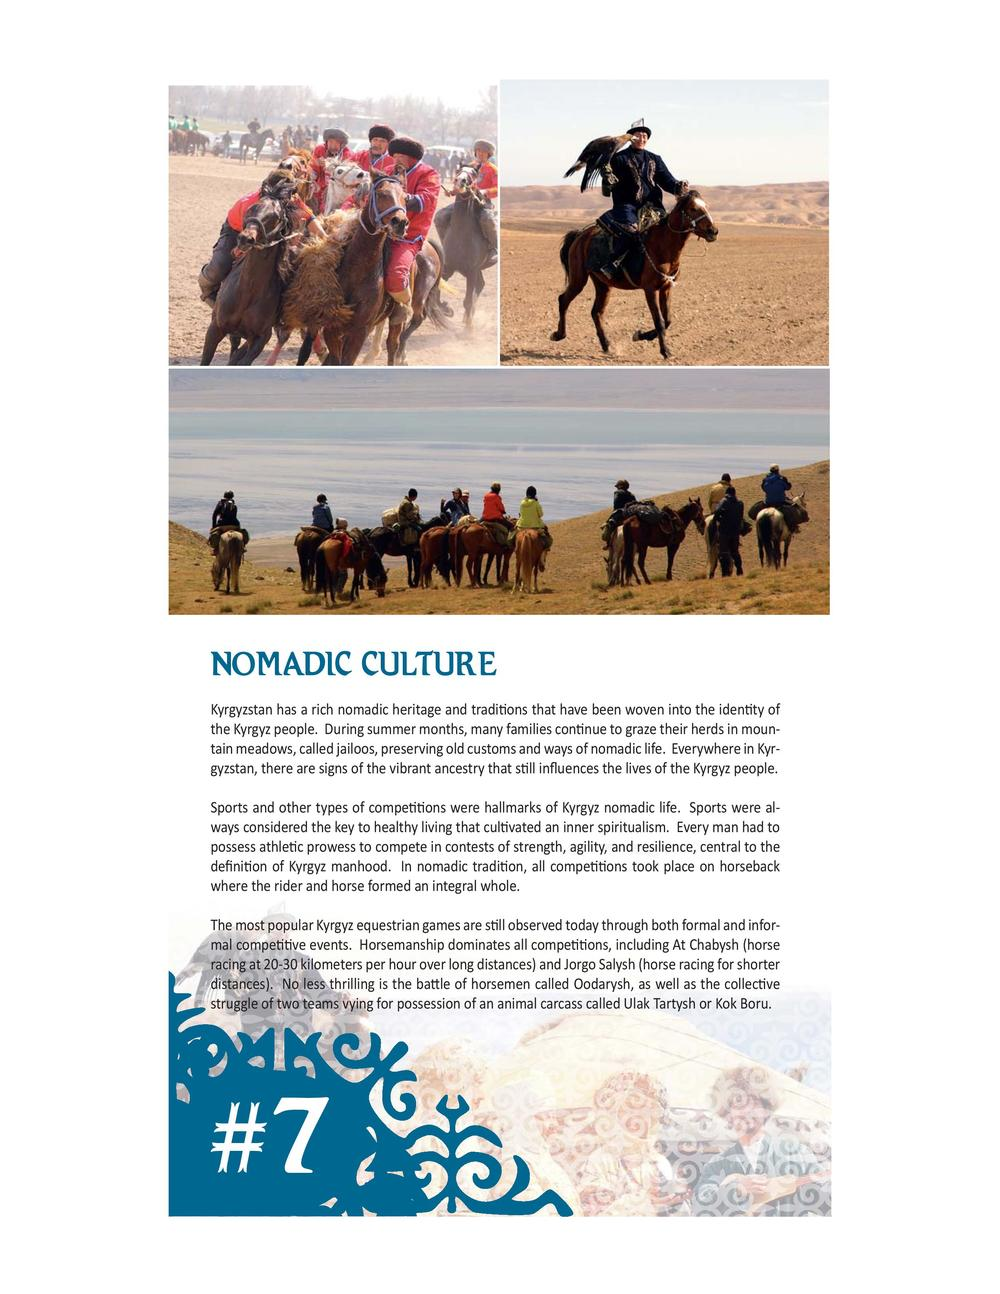 10 reasons to explore Kyrgyzstan_SMALL-page-008.jpg